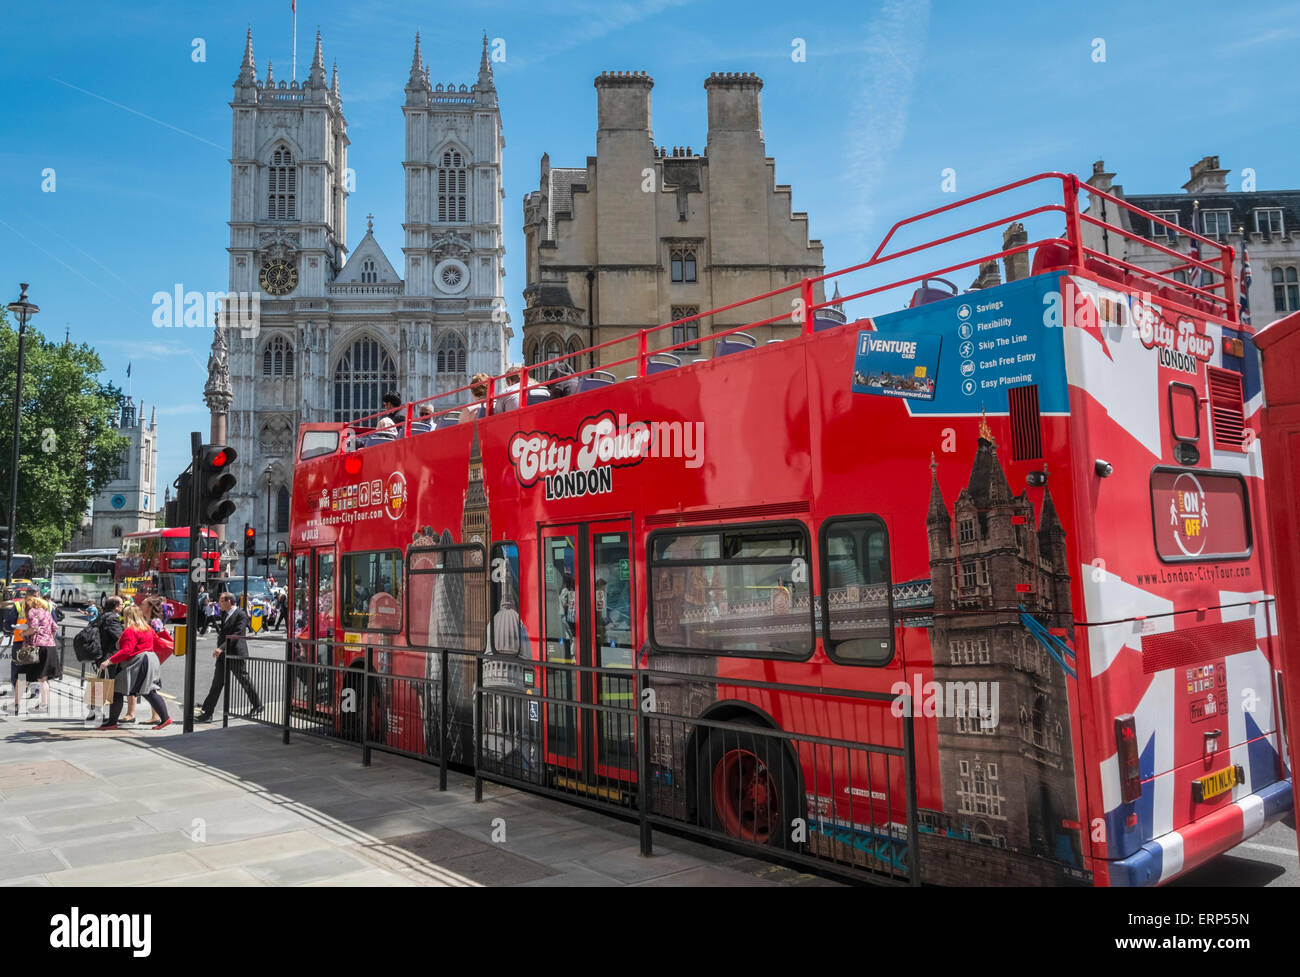 London City sightseeing open top tour bus with Westminster Abbey in the background, London, England UK - Stock Image